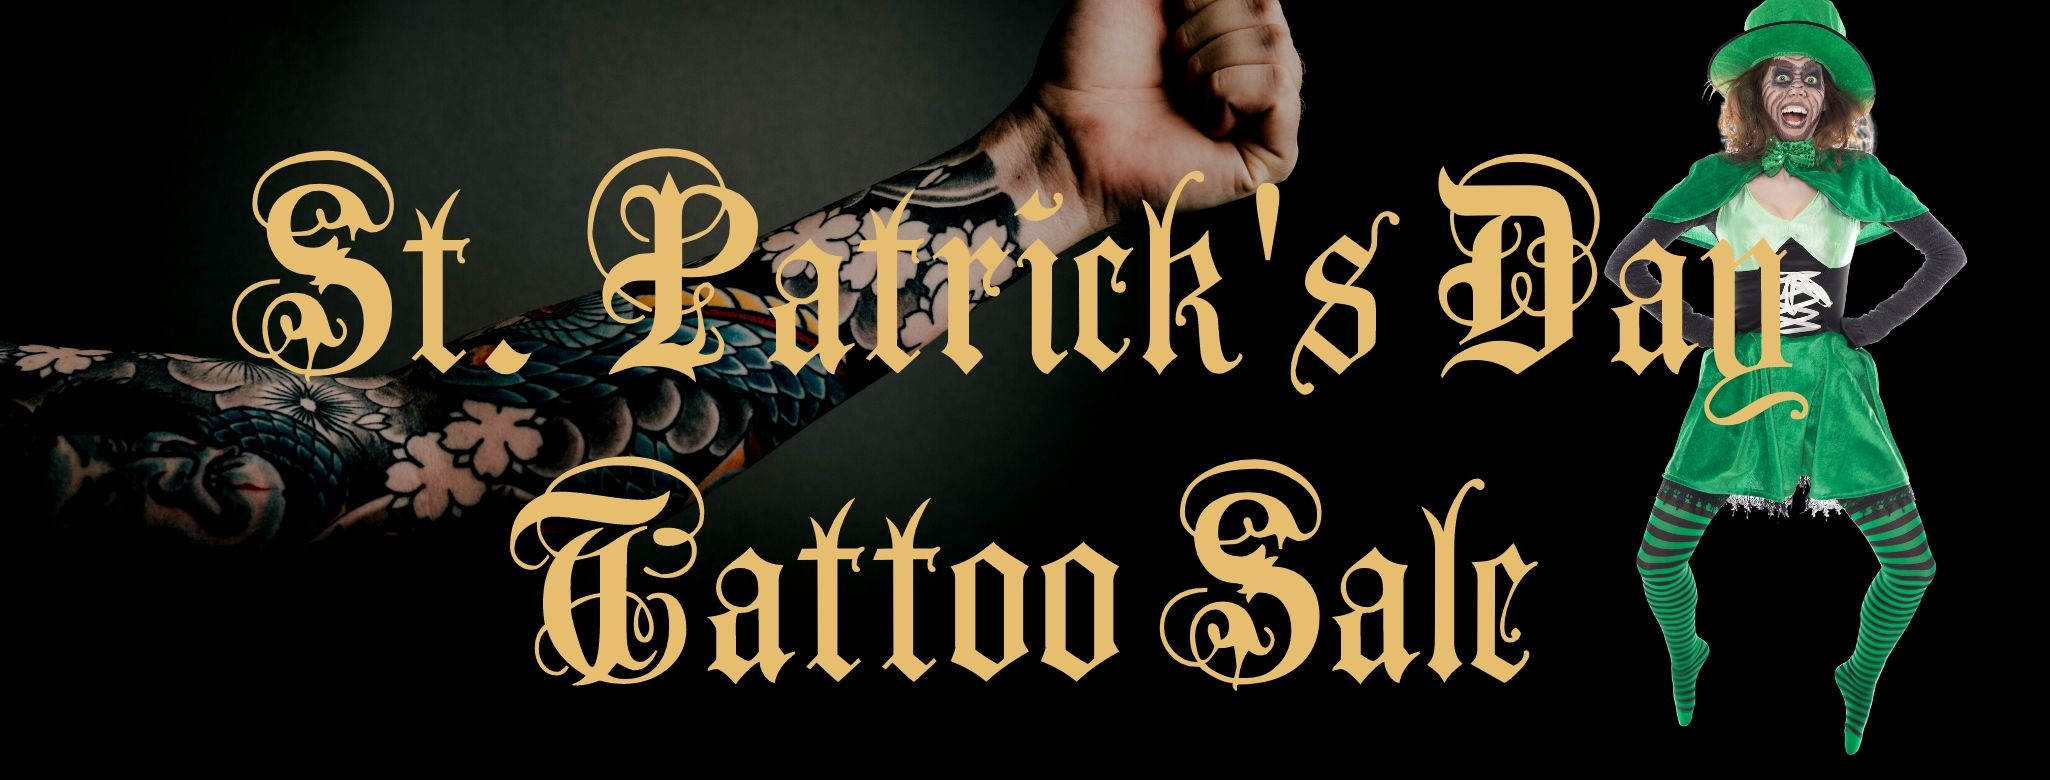 St. Patricks Day Tattoo Sale